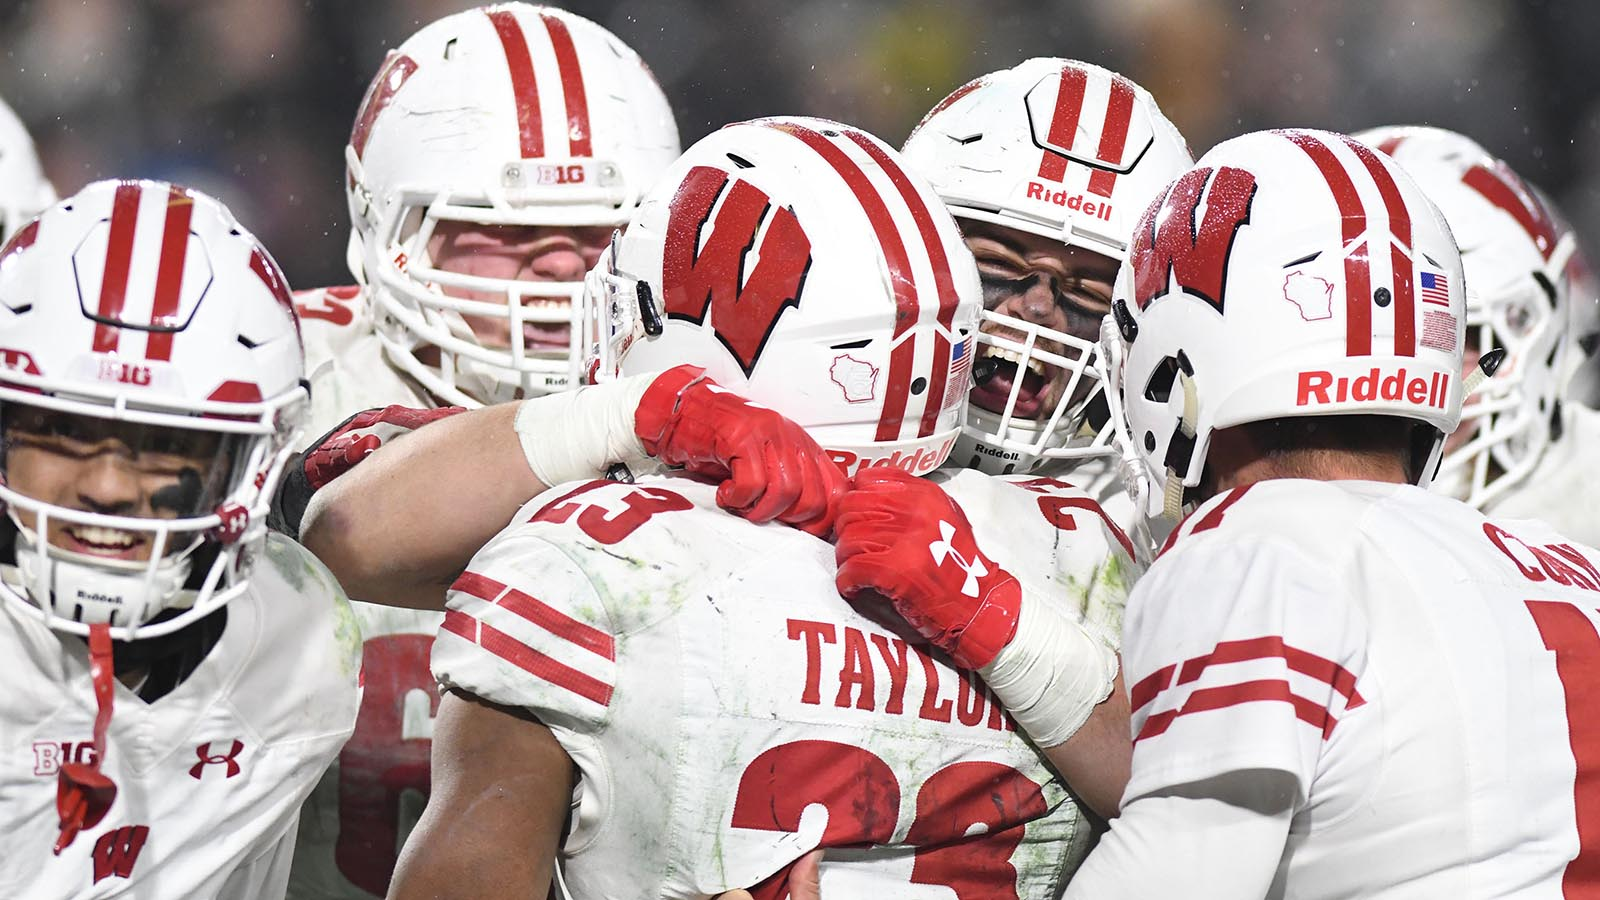 Nov 17, 2018; West Lafayette, IN, USA; The Wisconsin Badgers celebrate after defeating the Purdue Boilermakers, 47-44, in triple overtime at Ross-Ade Stadium. Mandatory Credit: Thomas J. Russo-USA TODAY Sports